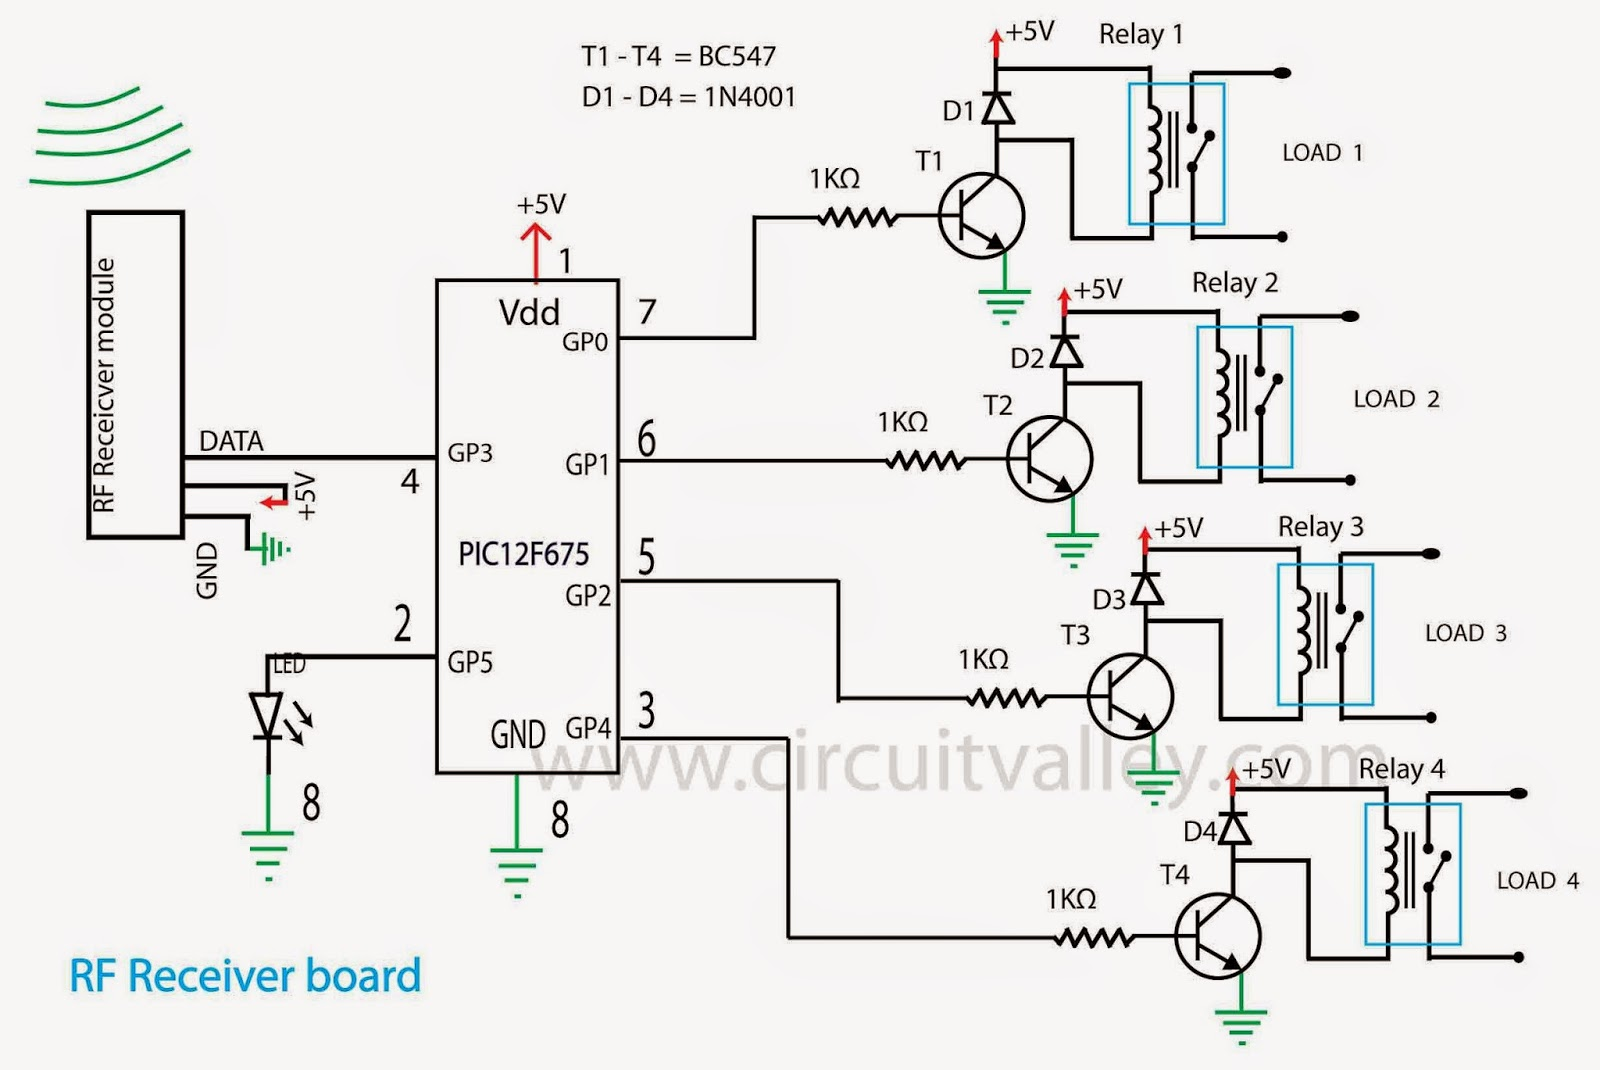 Control 4 channel Relay Board by using Low Cost Radio